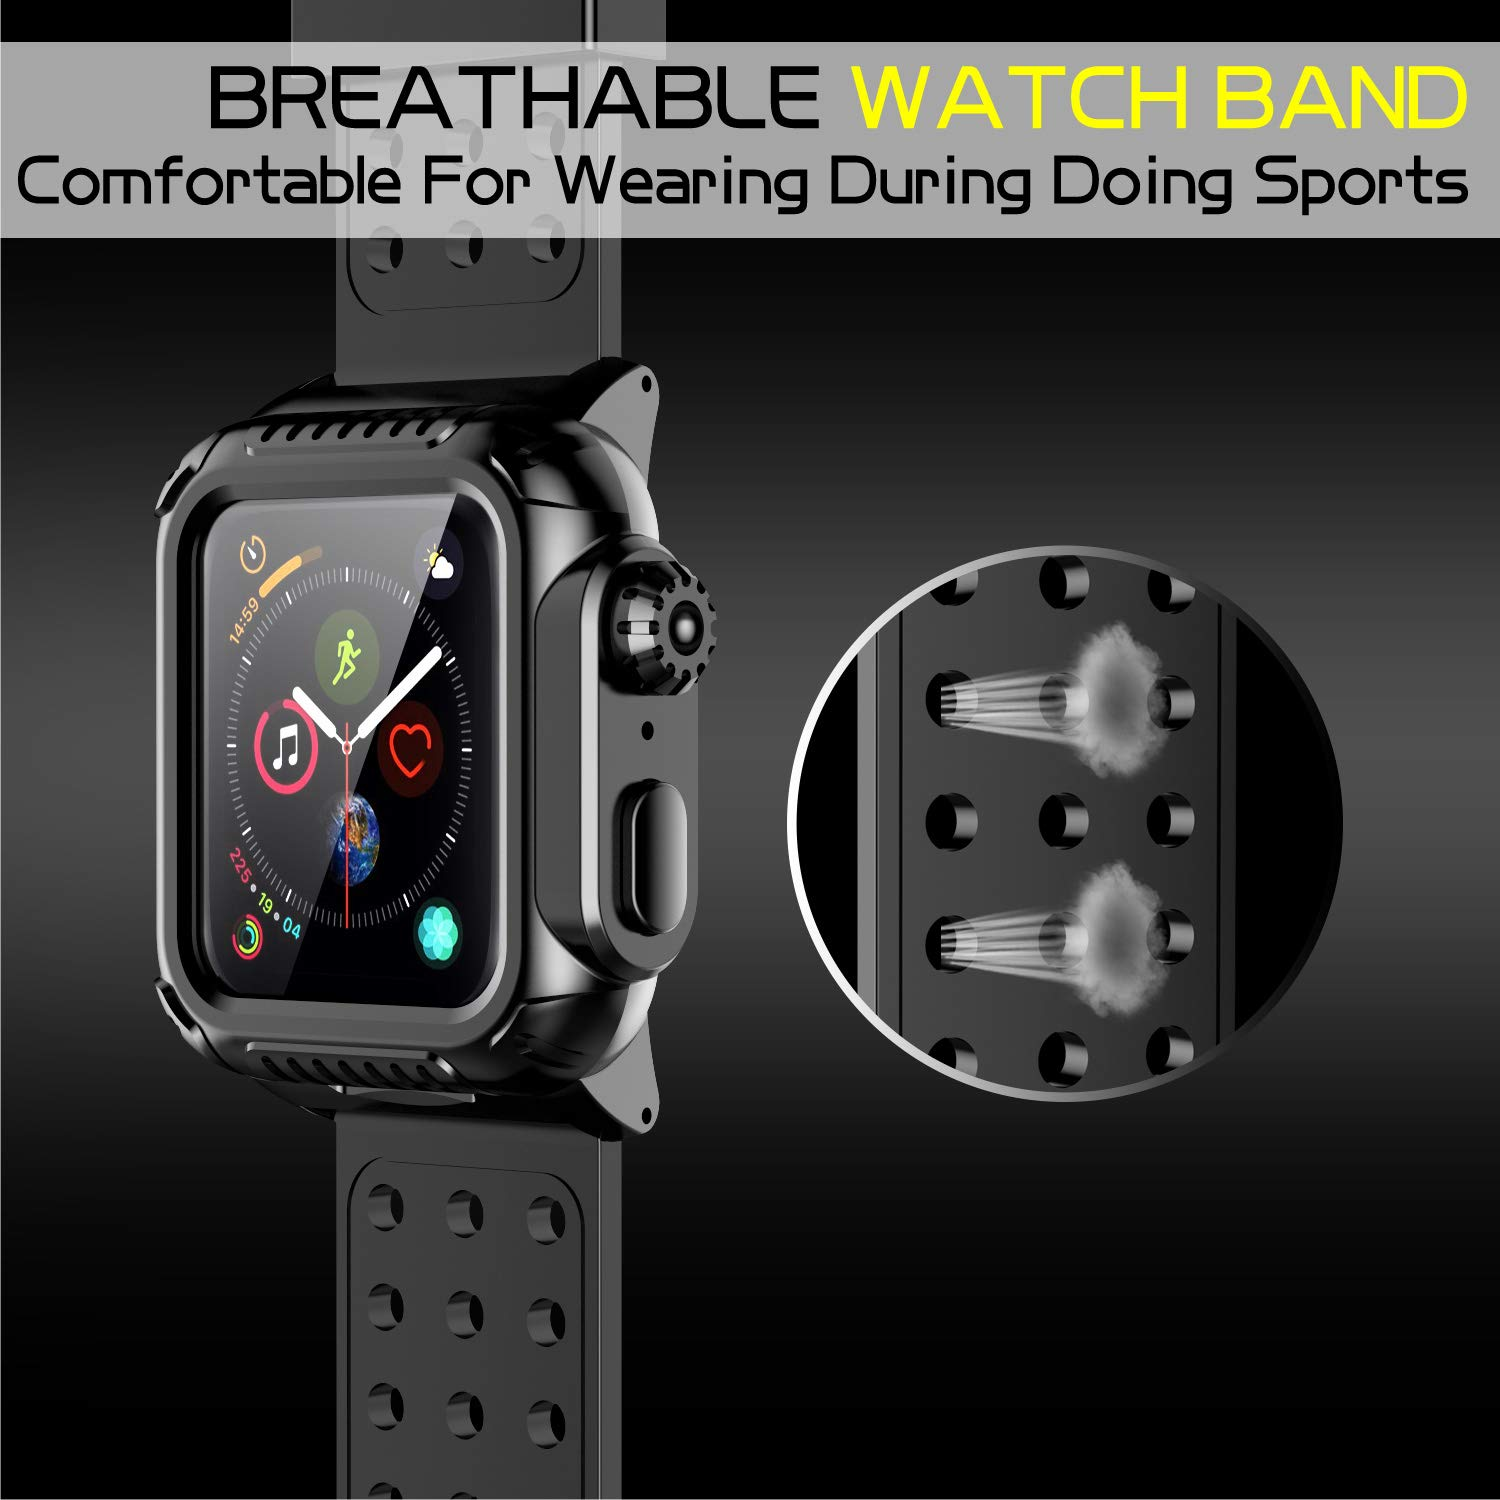 Apple Watch 4 Case Band 44mm 2018, SPIDERCASE 360° Rugged Case with Strap Band, Built-in Screen Protector Full Body Cover Case for Apple Watch Series 4 44mm ONLY, Anti-Scratch, Shockproof and More by SPIDERCASE (Image #6)